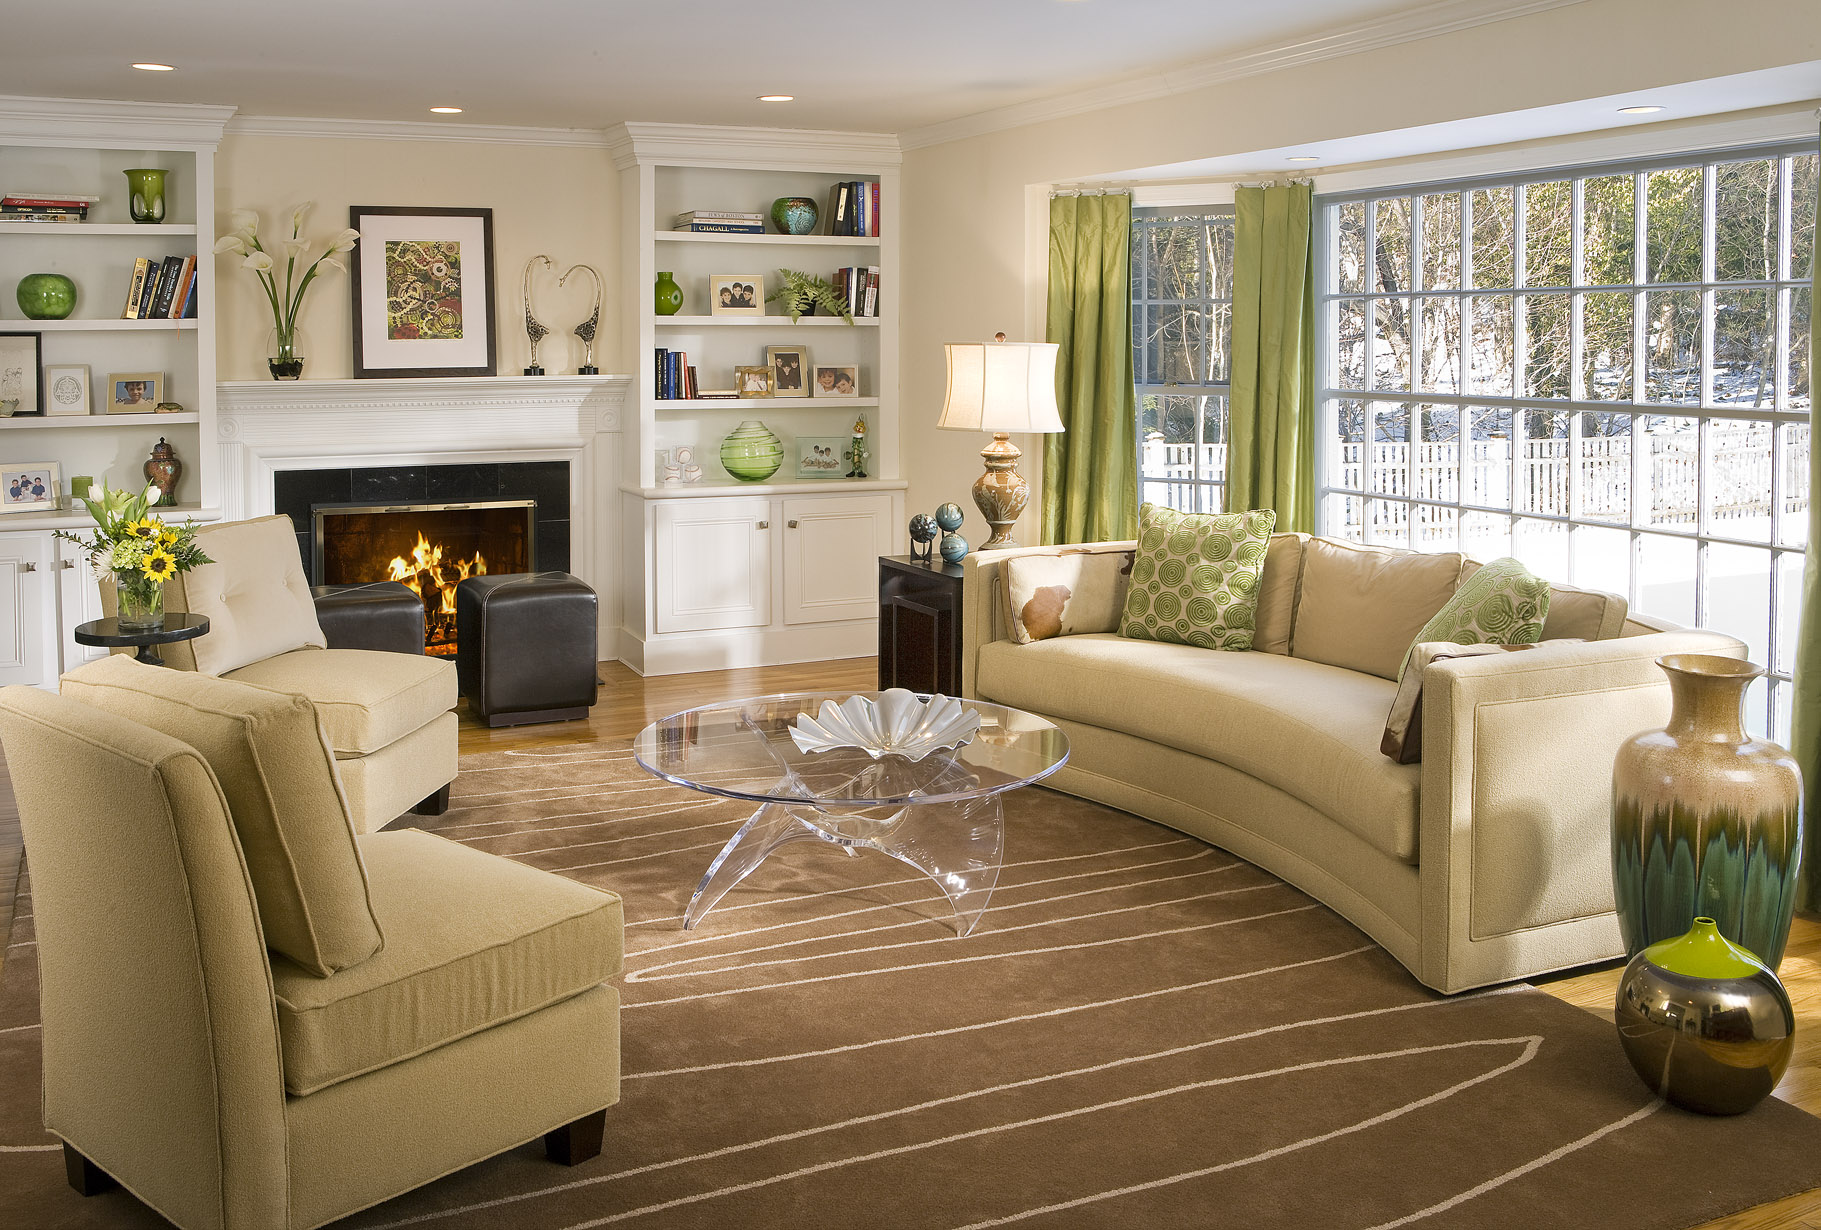 We may earn commission on some of the ite. Inexpensive Home Decor Ideas, Pictures & Photos